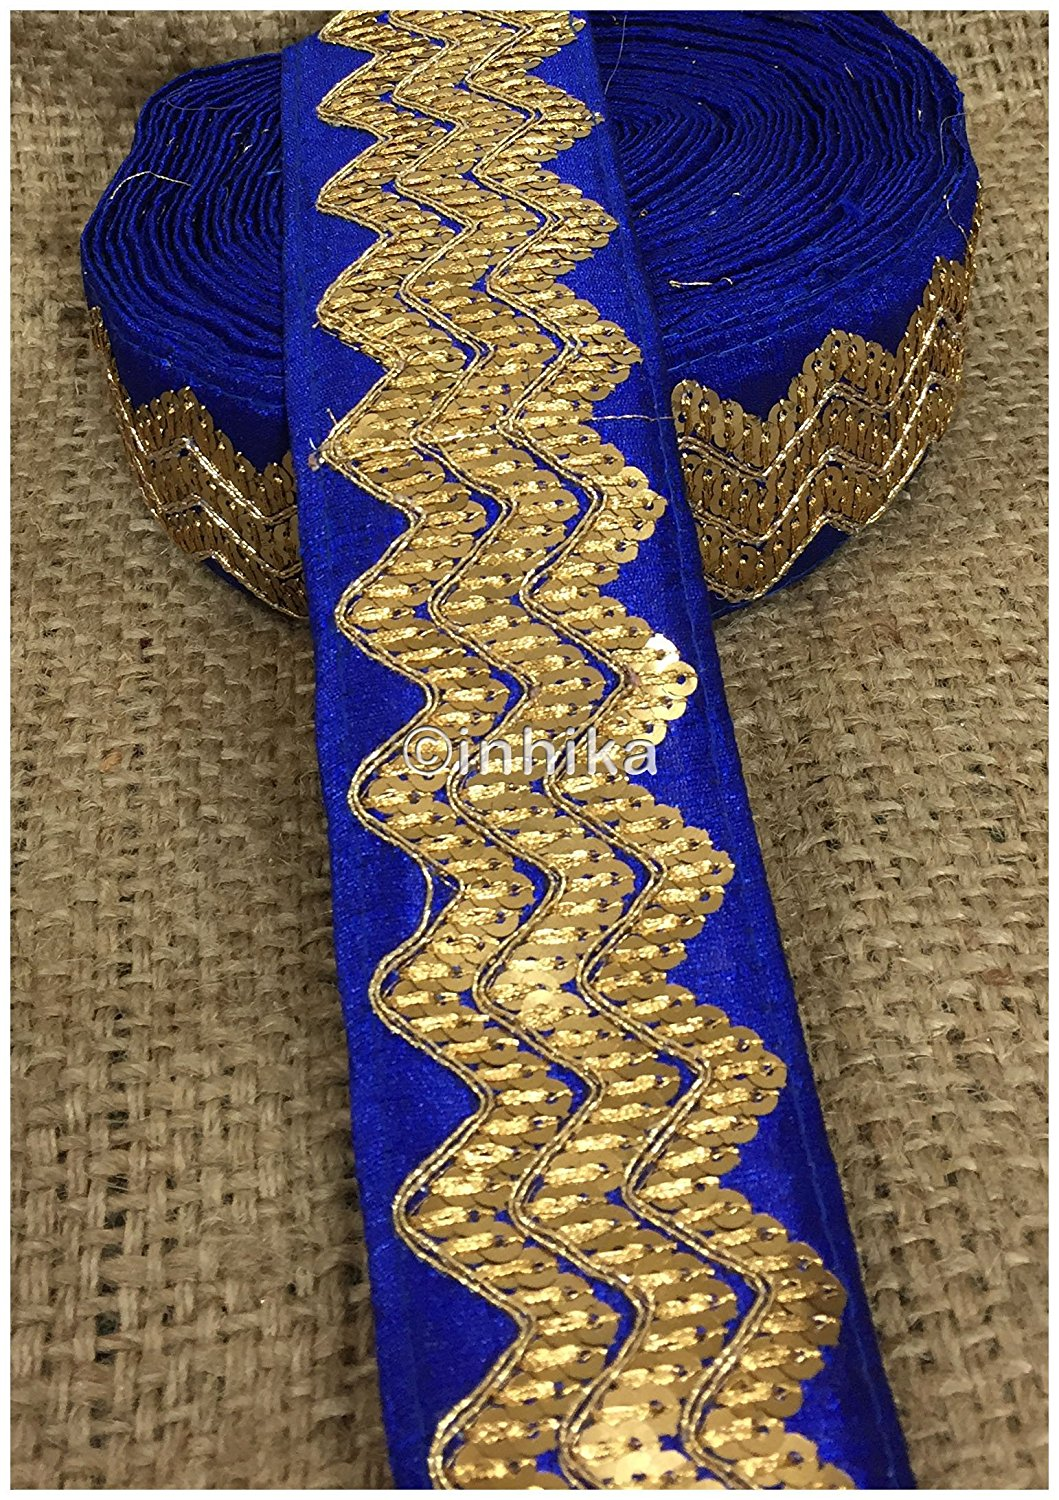 lace trim fabric sewing trims and embellishments for clothing Royal Blue, Embroidery, Sequins, 3 Inch Wide material Cotton Mix, Dupion